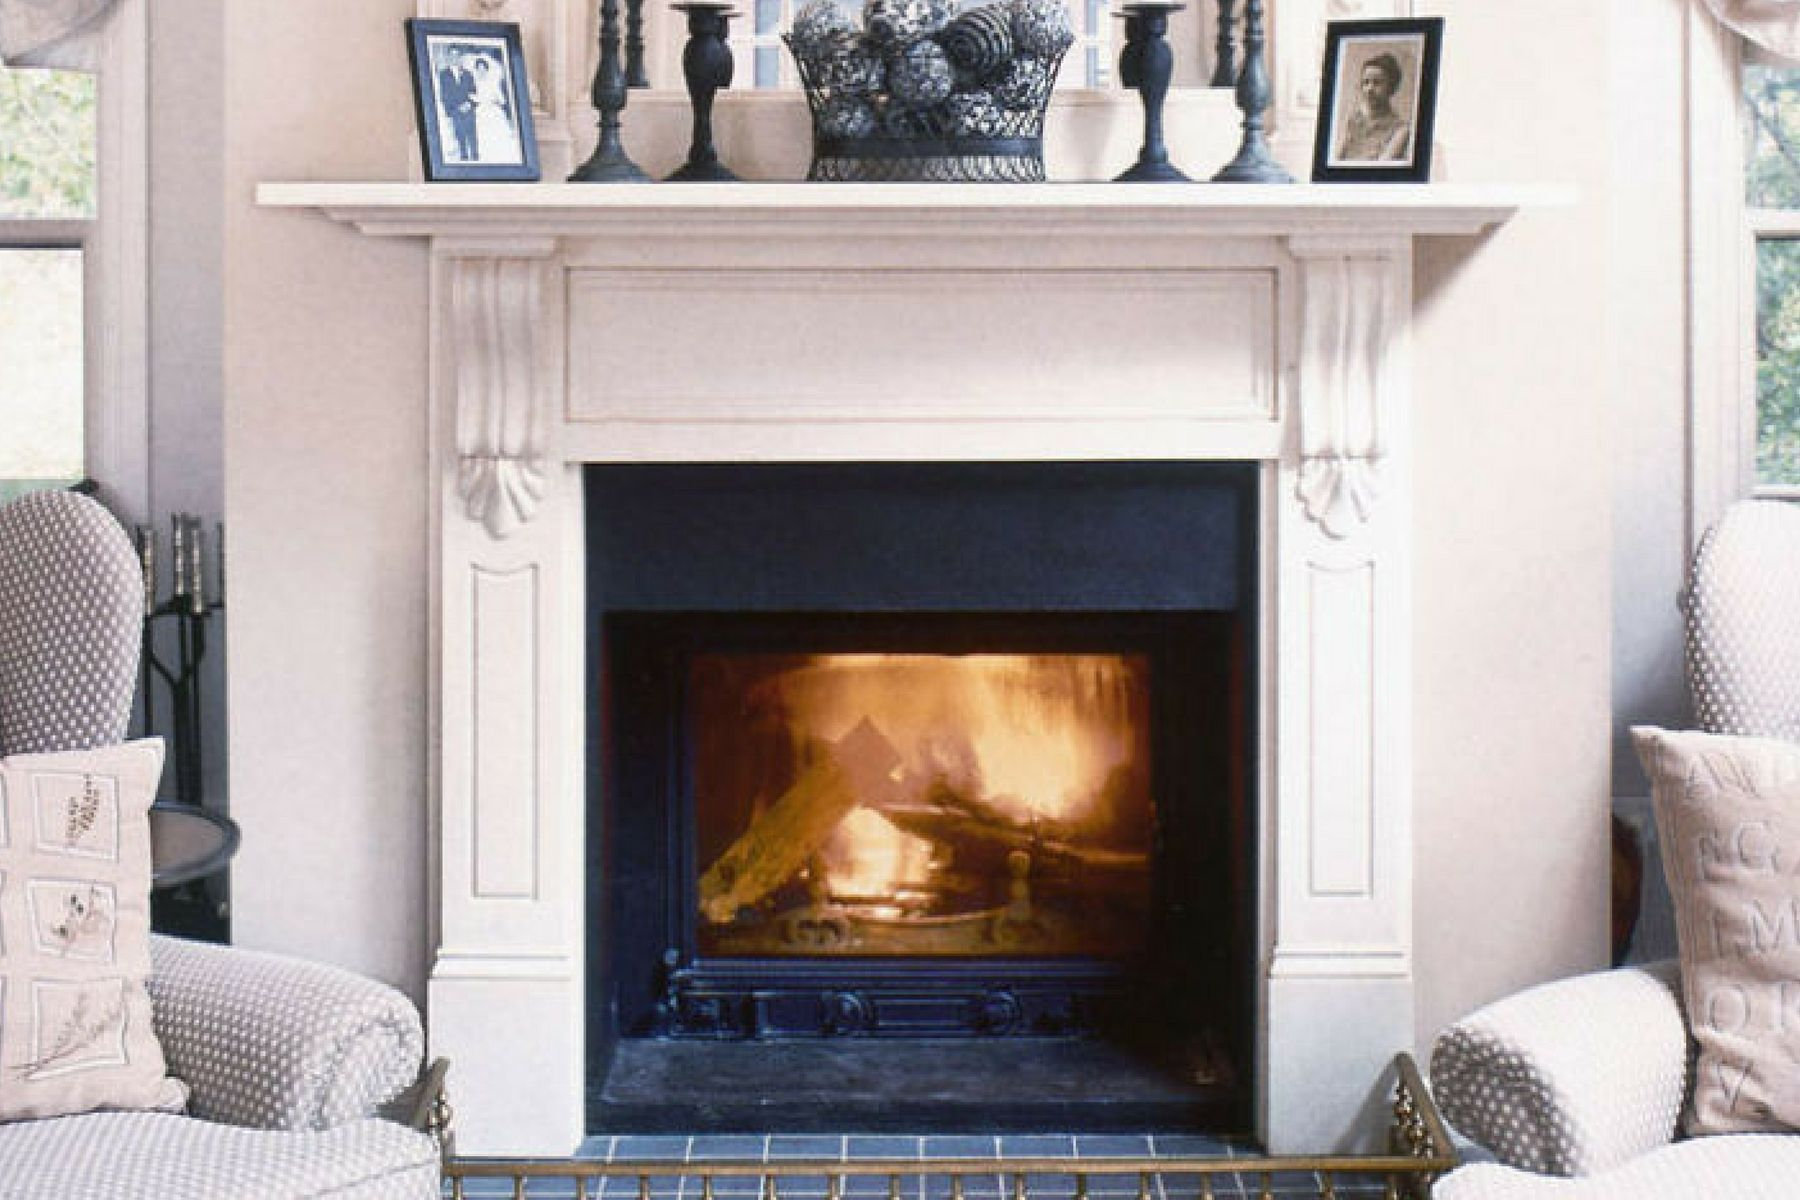 cheminees philippe radiante 700 fireplace black cheminee